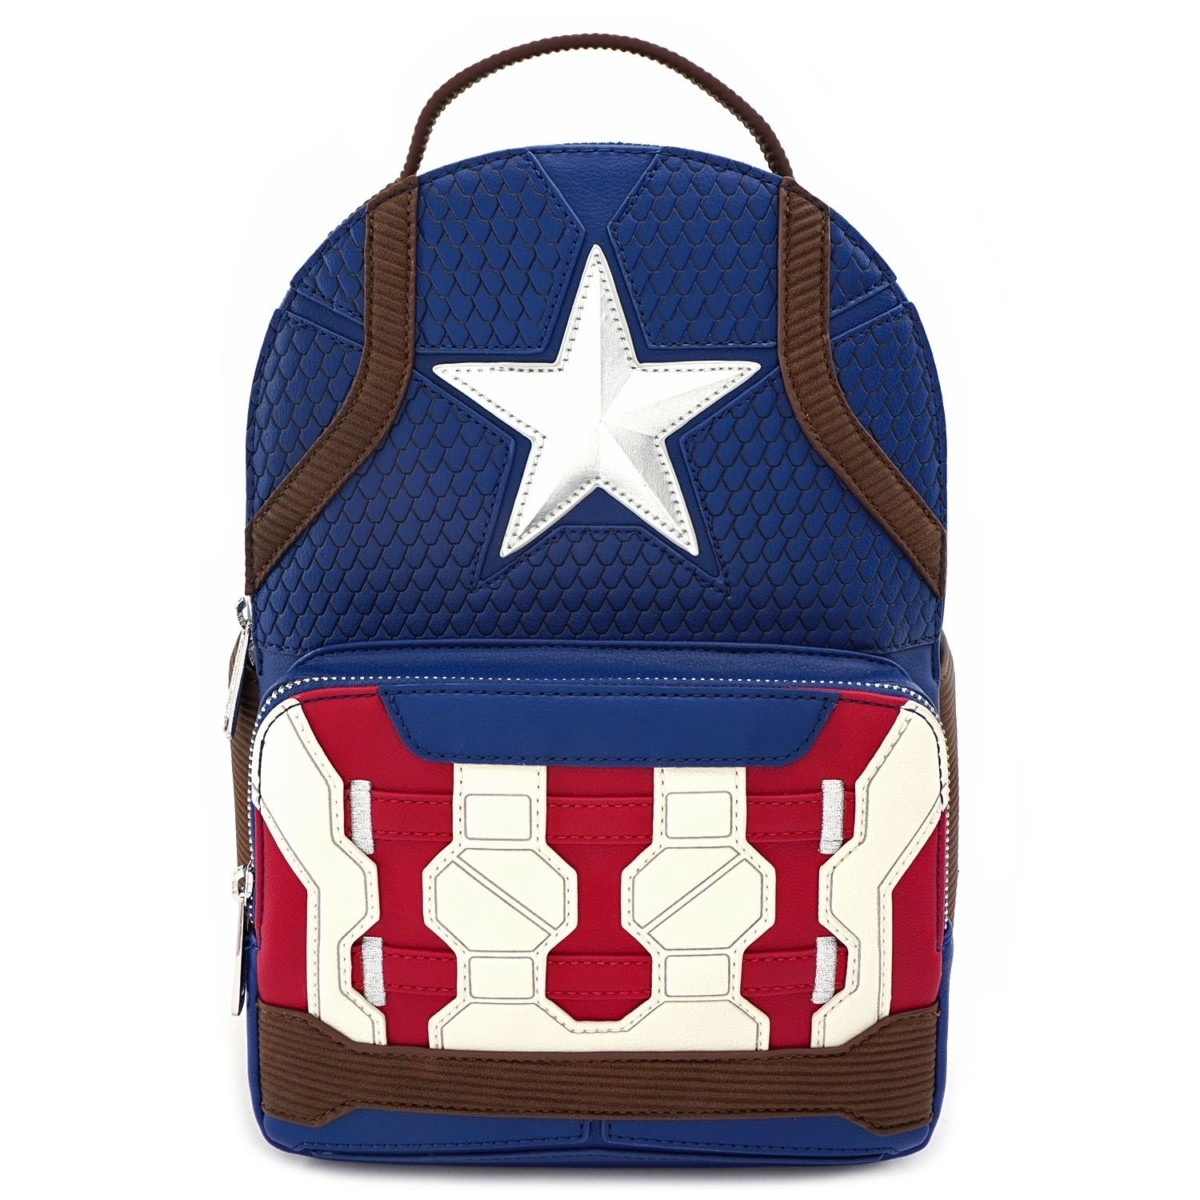 New Marvel Backpacks & Accessories from Loungefly 2